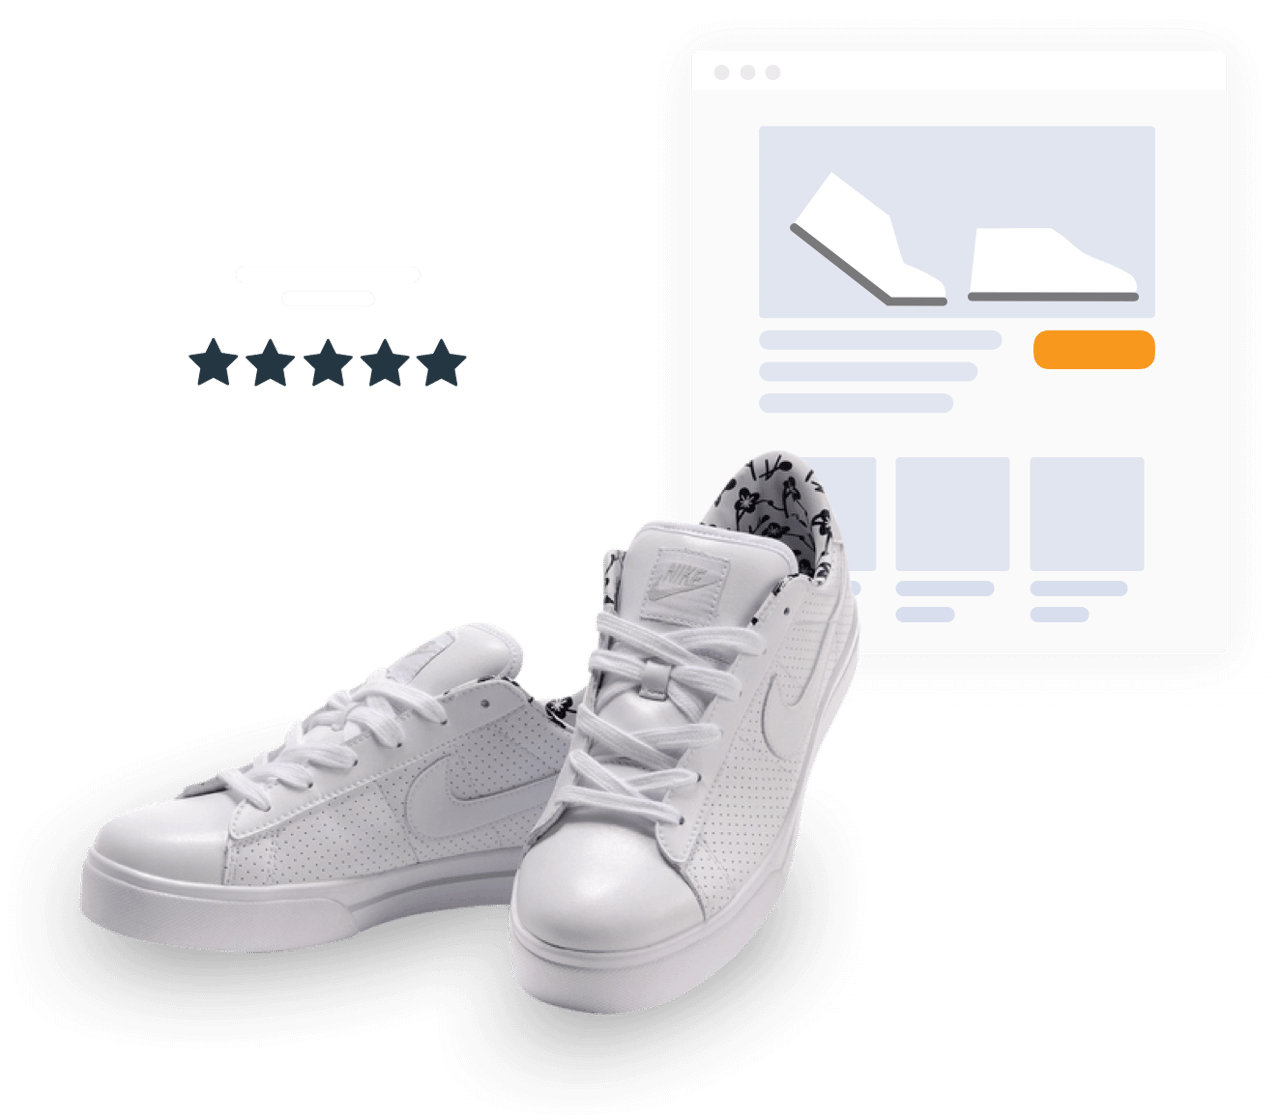 Sell physical goods online